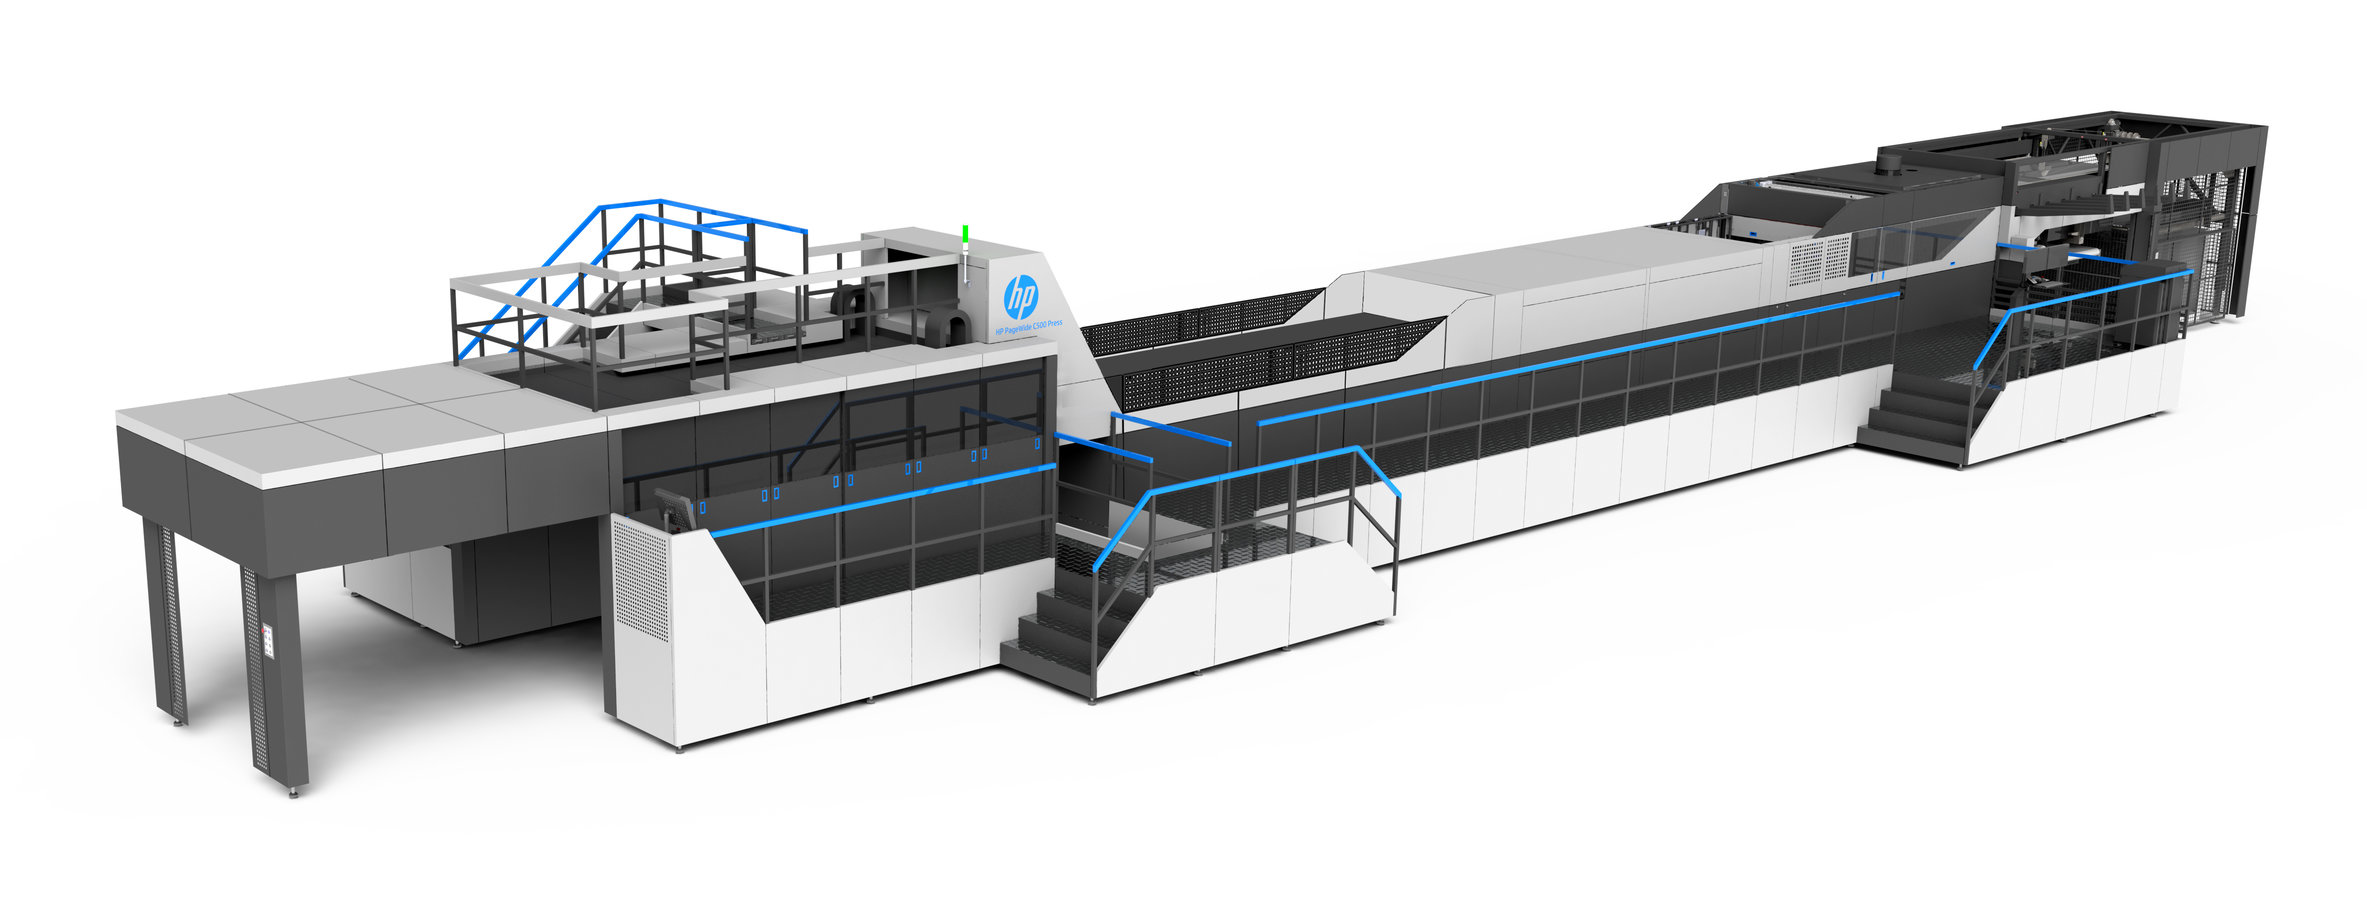 cc32d9b955 Smurfit Kappa and HP bring first digital post print corrugated press to  Europe